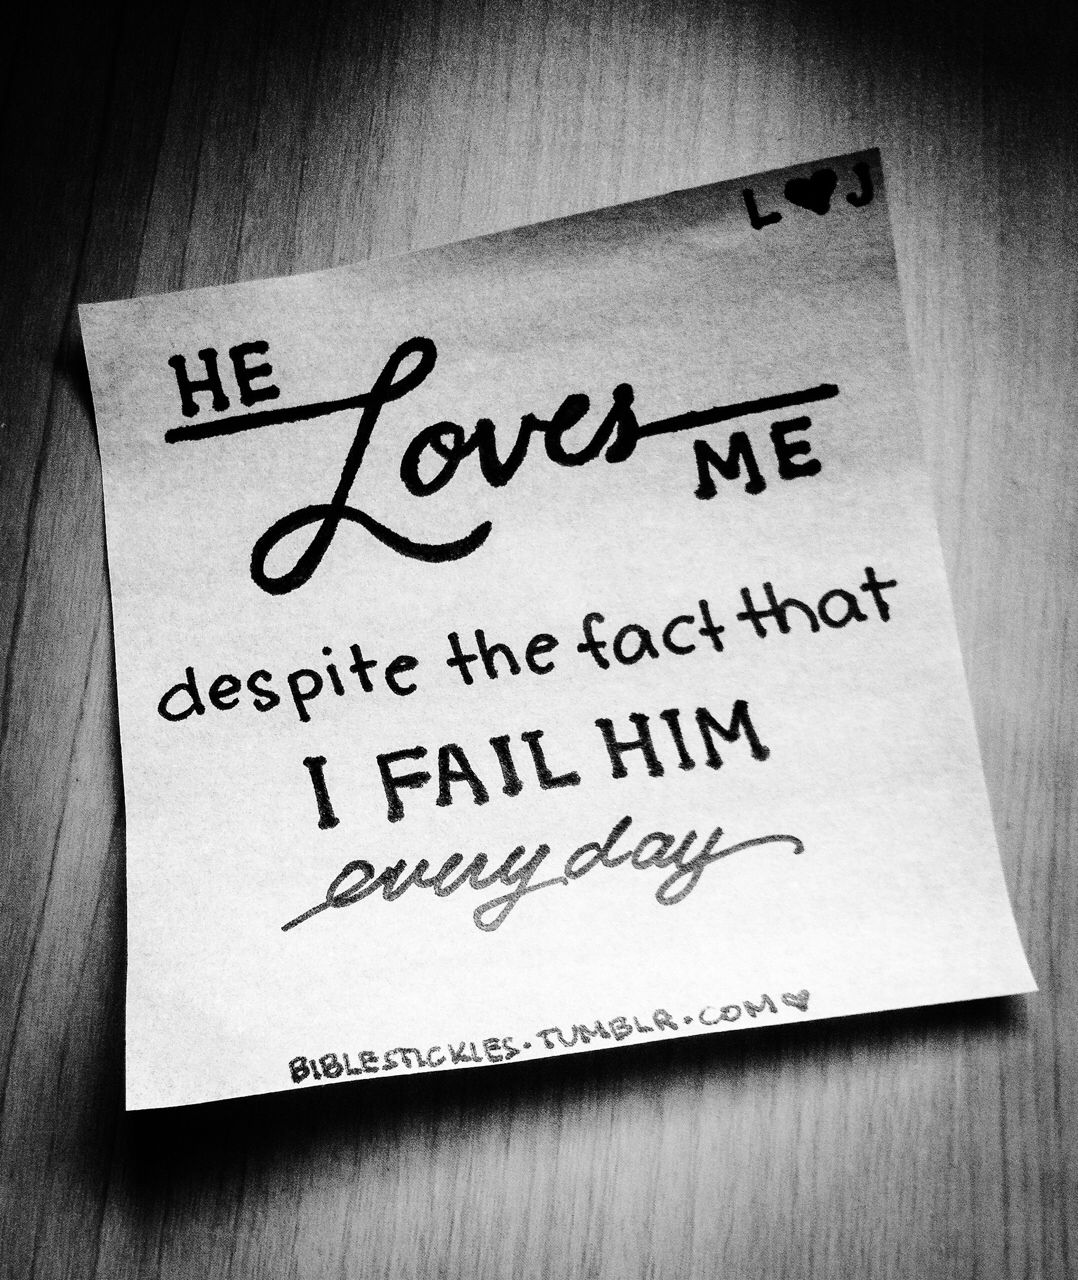 Daily Bible Quotes Text: He Loves Me Despite The Fact That I Fail Him Everyday